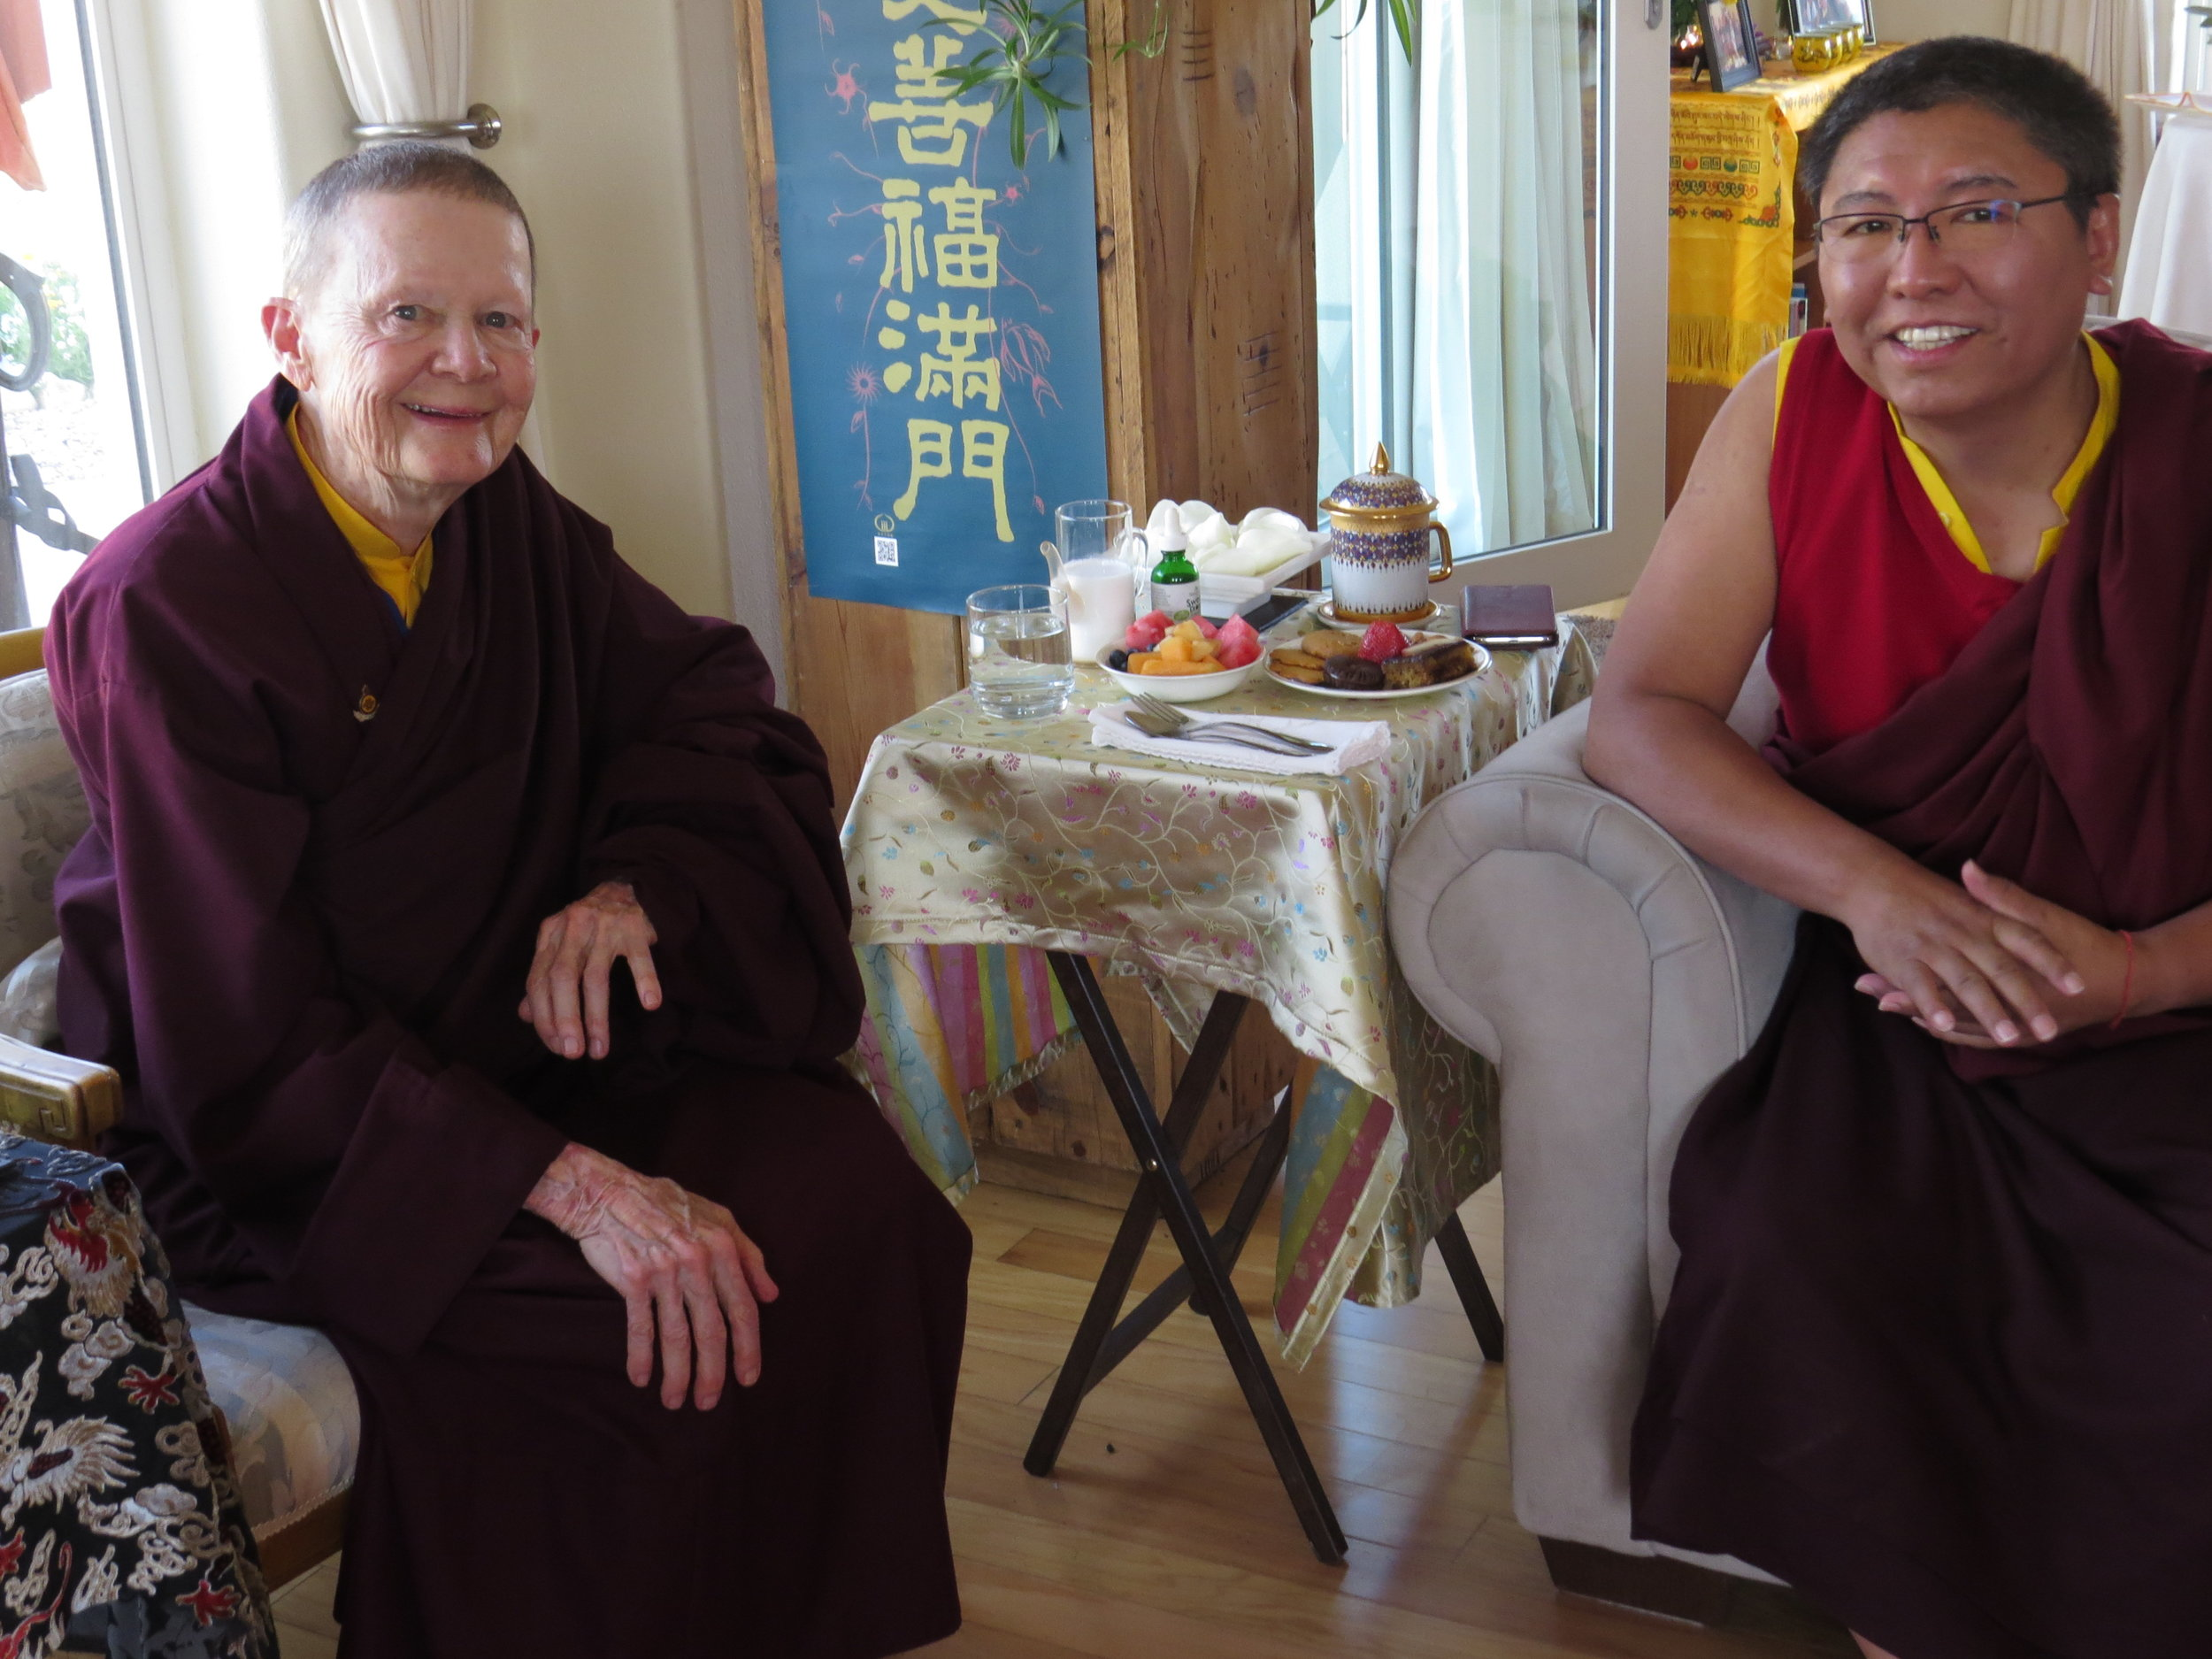 Ven. Pema Chödrön and Tsoknyi Rinpoche have a warm and lively conversation as guests of honor for an afternoon tea with the local and visiting monastics at Pema Chöling.